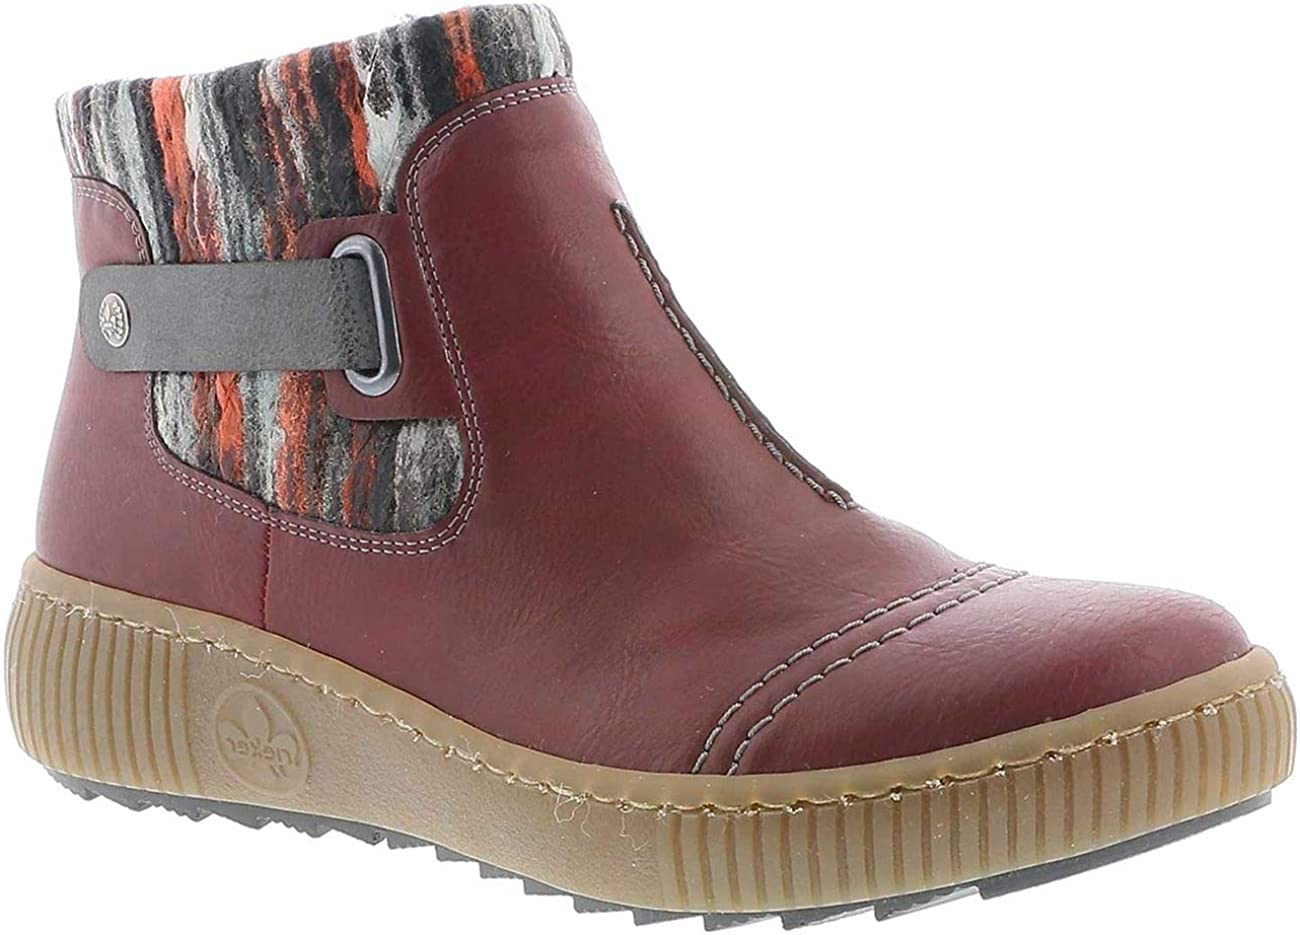 Rieker Women's Felicitas Z6684 Ankle Bootie 5.5 Challenge the lowest San Antonio Mall price of Japan Multi Red